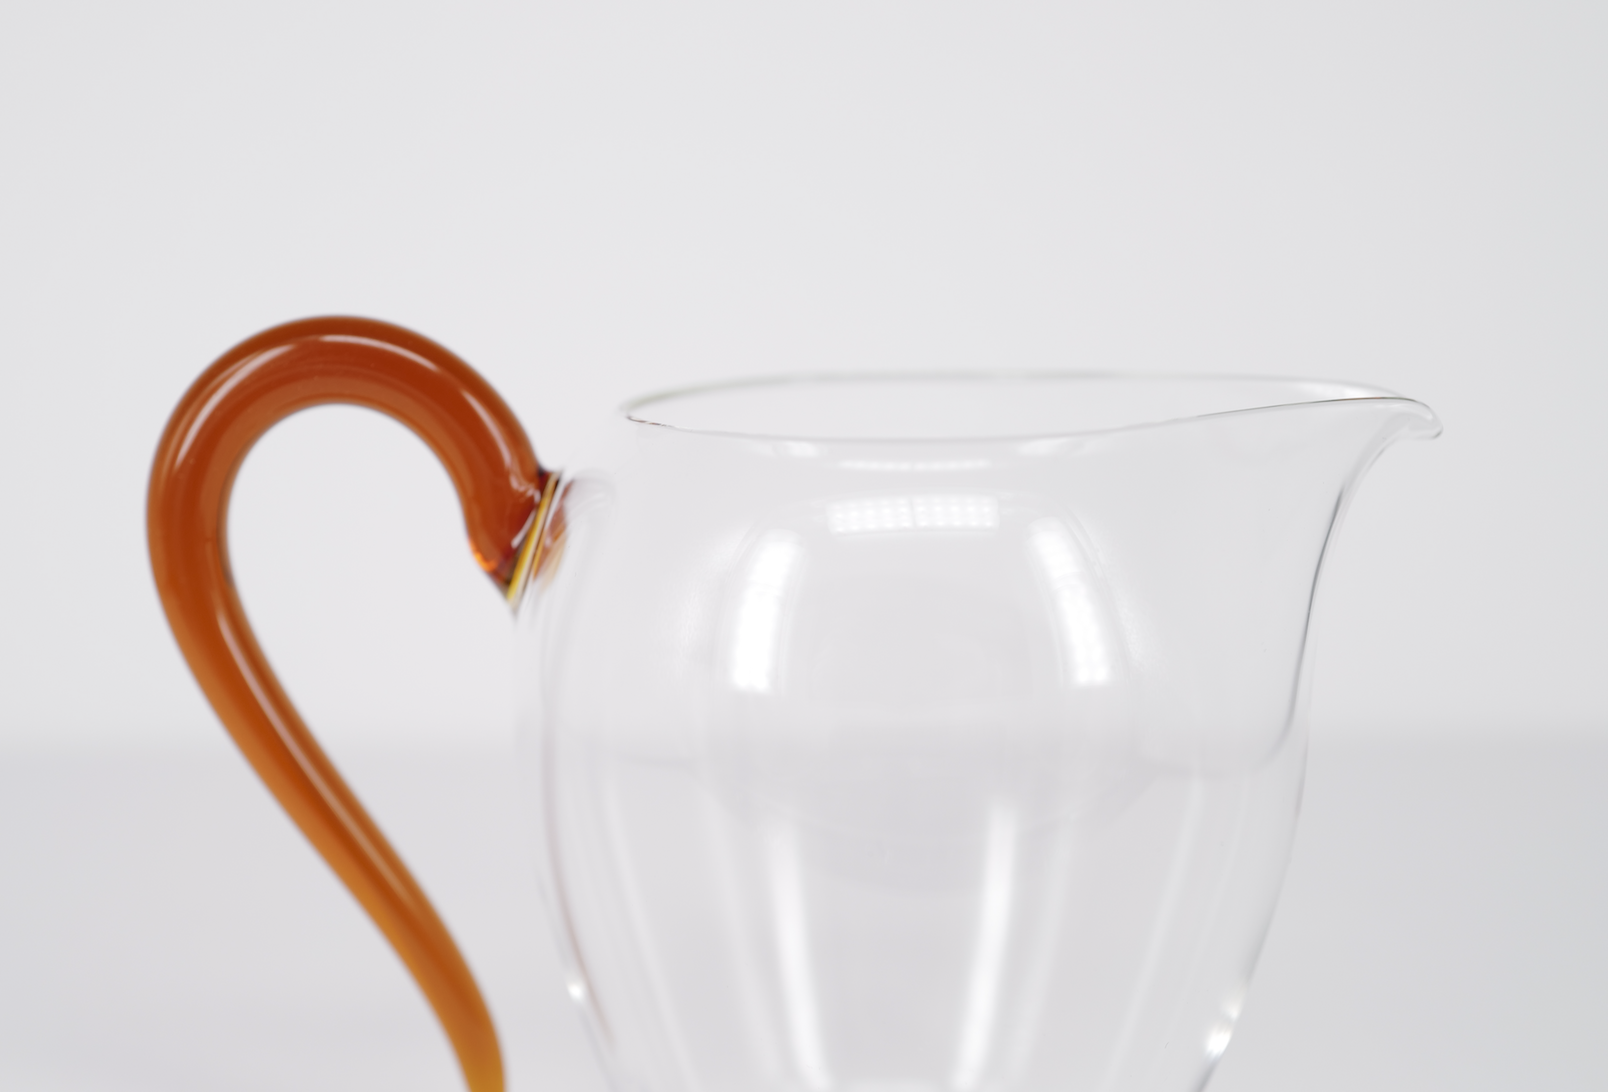 Zimantang Fair Cup in amber handle image